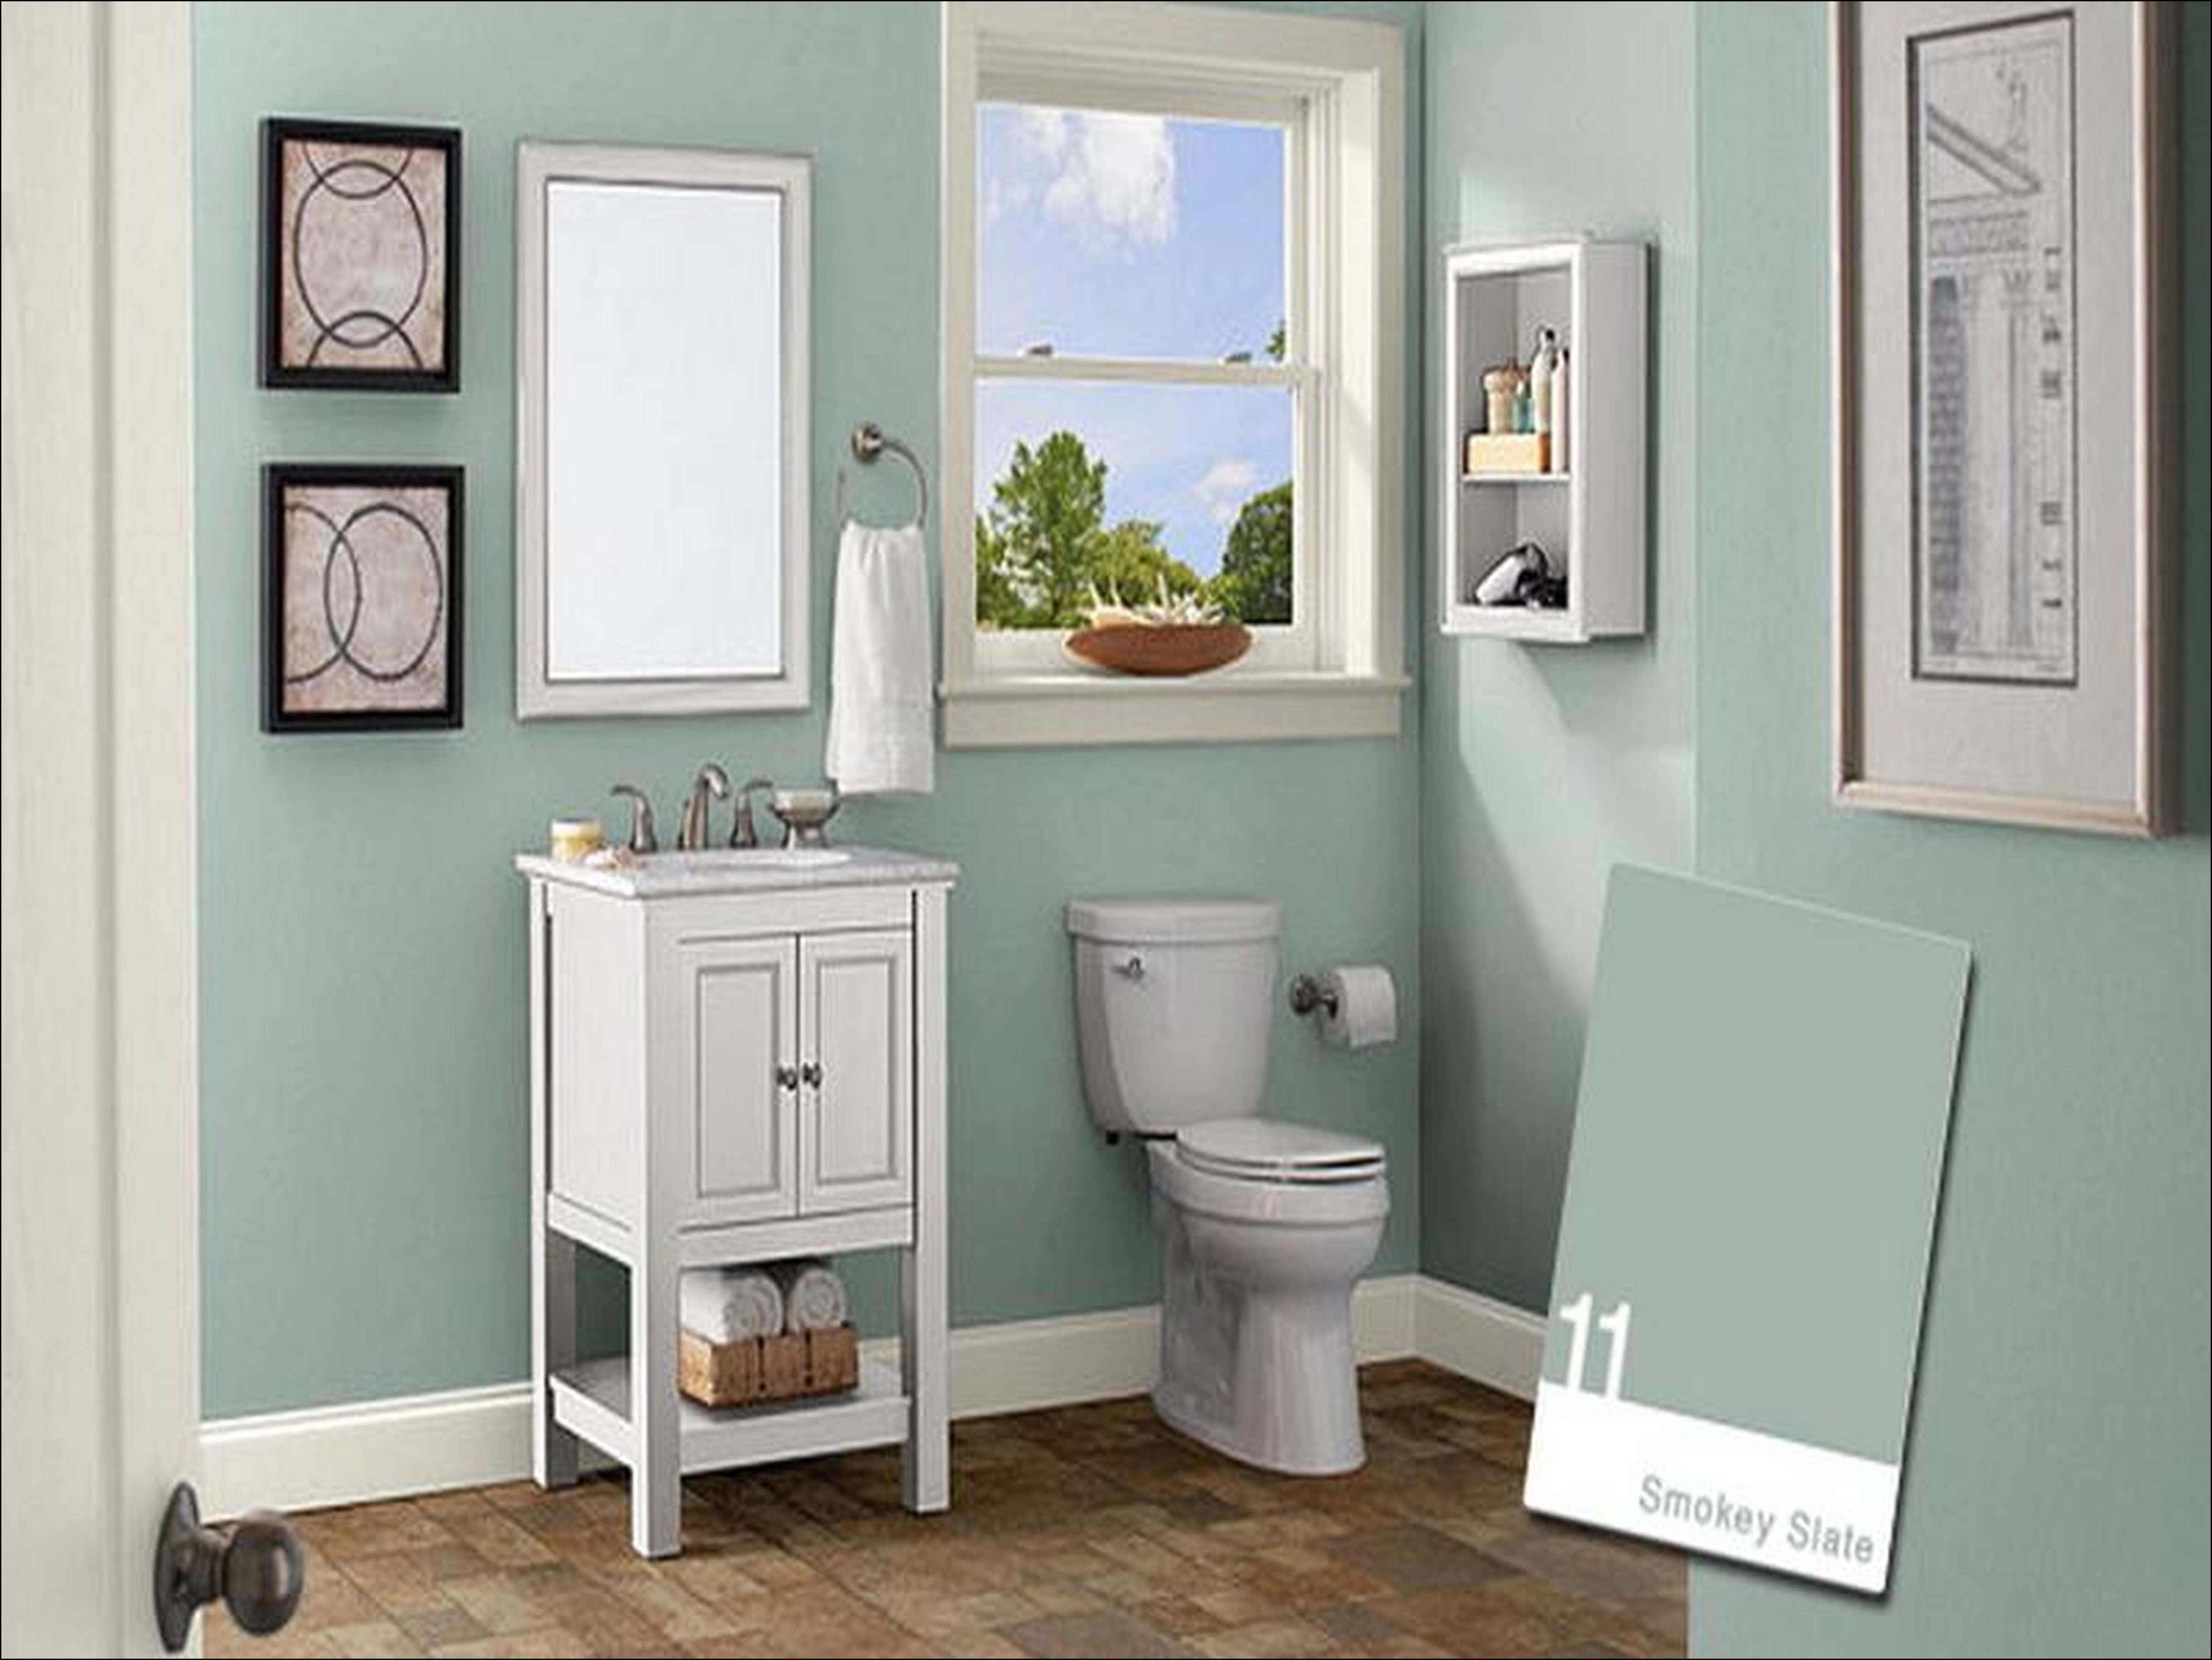 Charmant One More View That You Nonetheless Can Browse It Further For Smaller Bathroom  Paint Colors Concepts Is Little Bathroom Paint Colors Concepts Design, ...